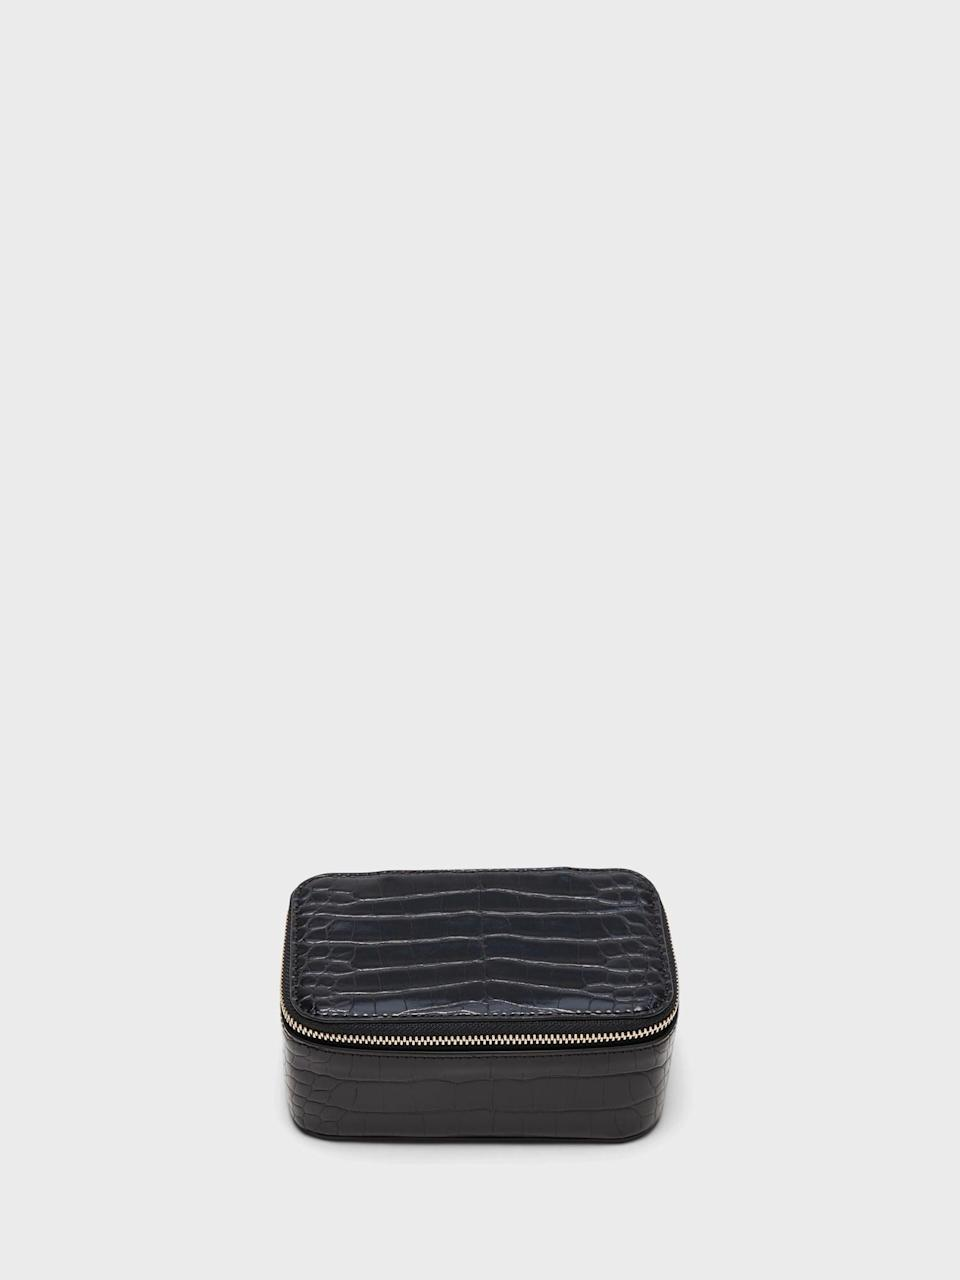 <p>This <span>Banana Republic Croc Jewelry Case</span> ($40, originally $68) is the perfect stocking stuffer to help organize that unruly bedside table!</p>